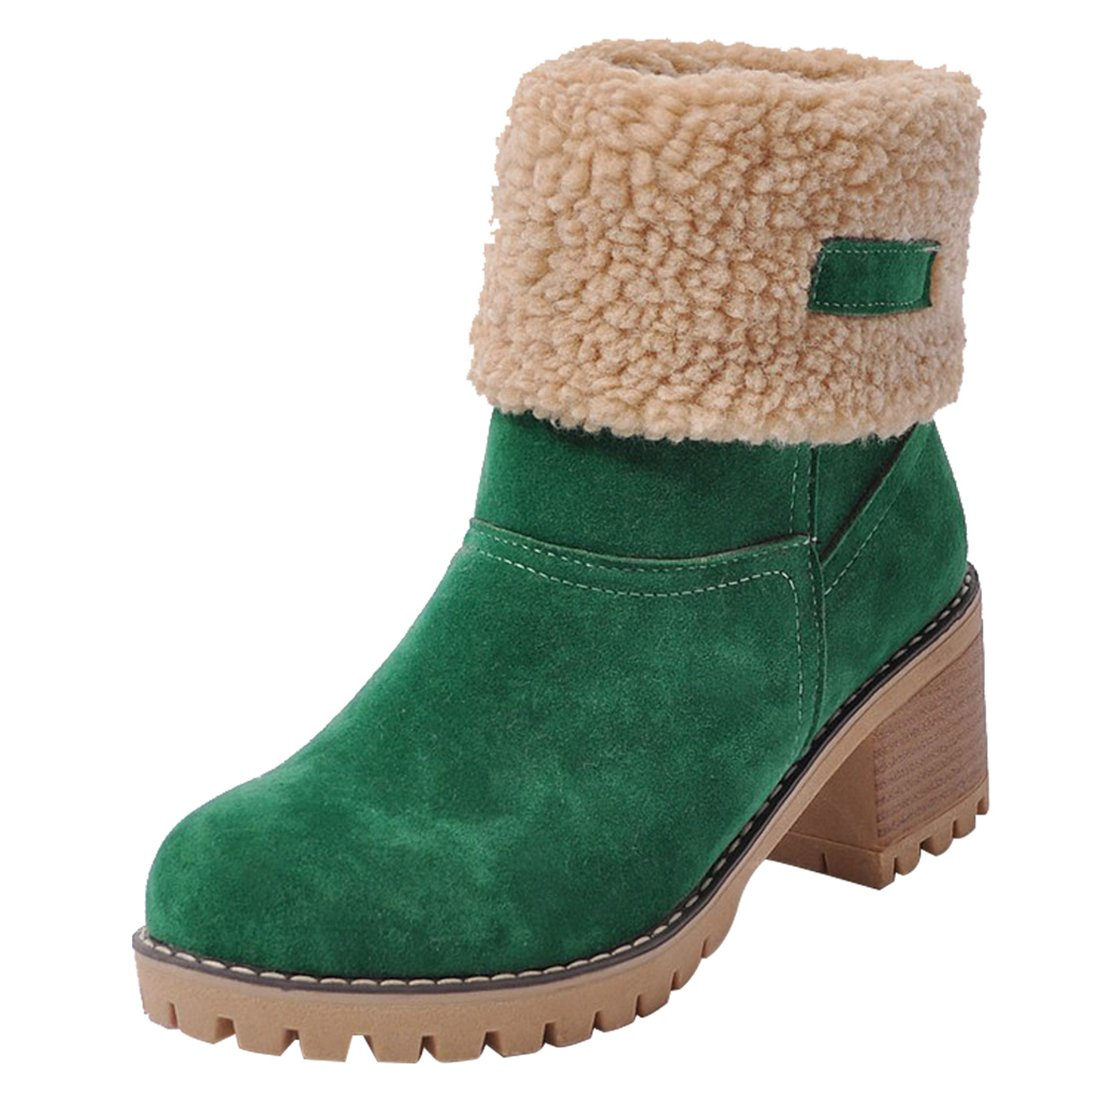 Green MORNISN Womens Winter Snow Boots Round Toe Suede Chunky mid Heel Faux Fur Warm Ankle Booties